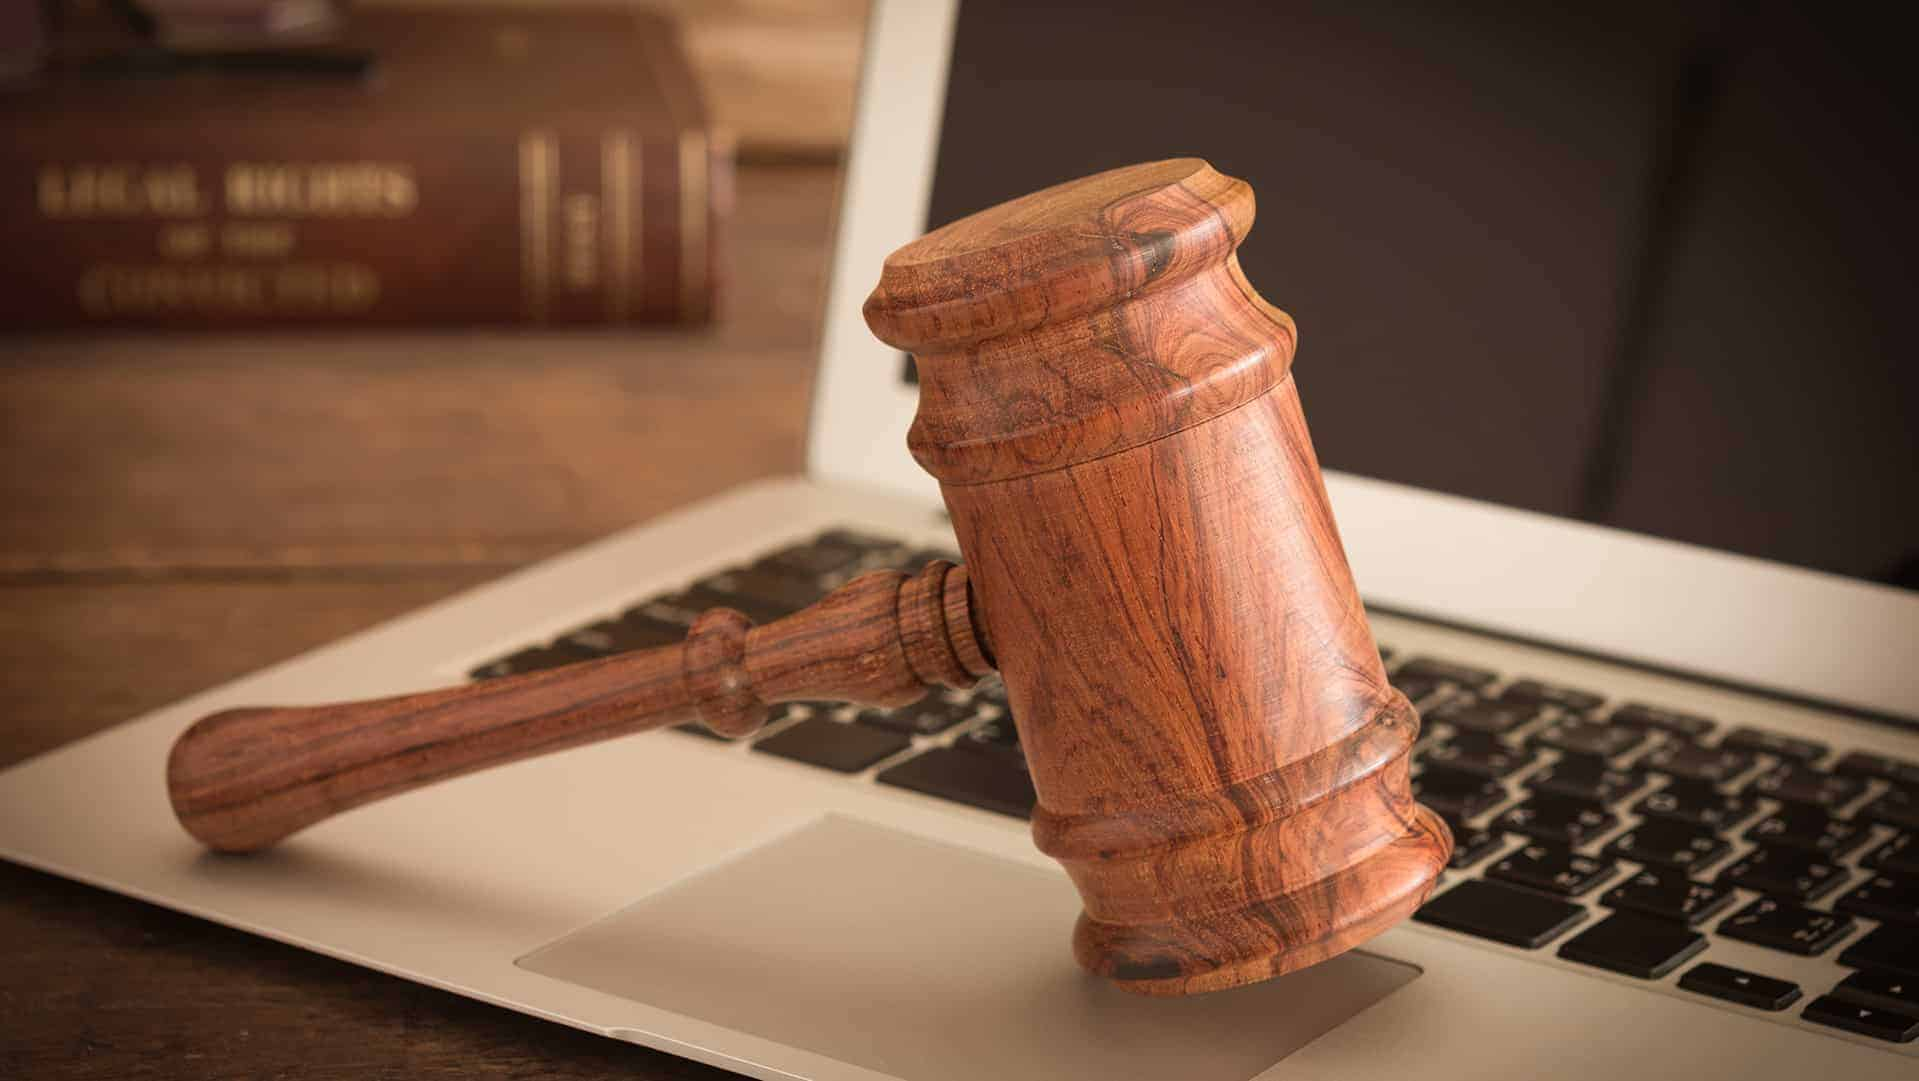 gavel resting on a computer